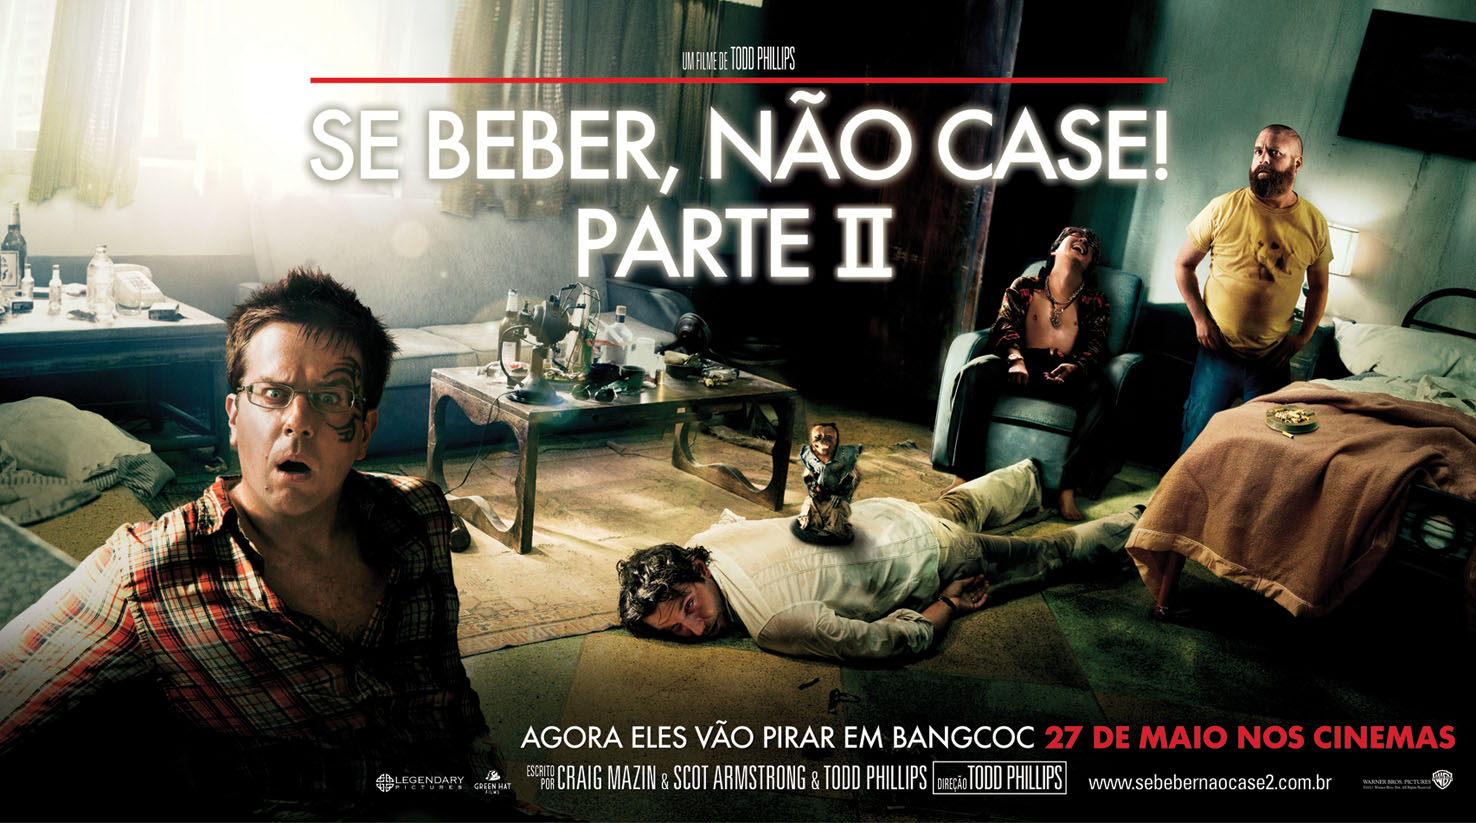 Se Beber, Não Case! Parte II (2011) BluRay 720p Dublado Torrent Download